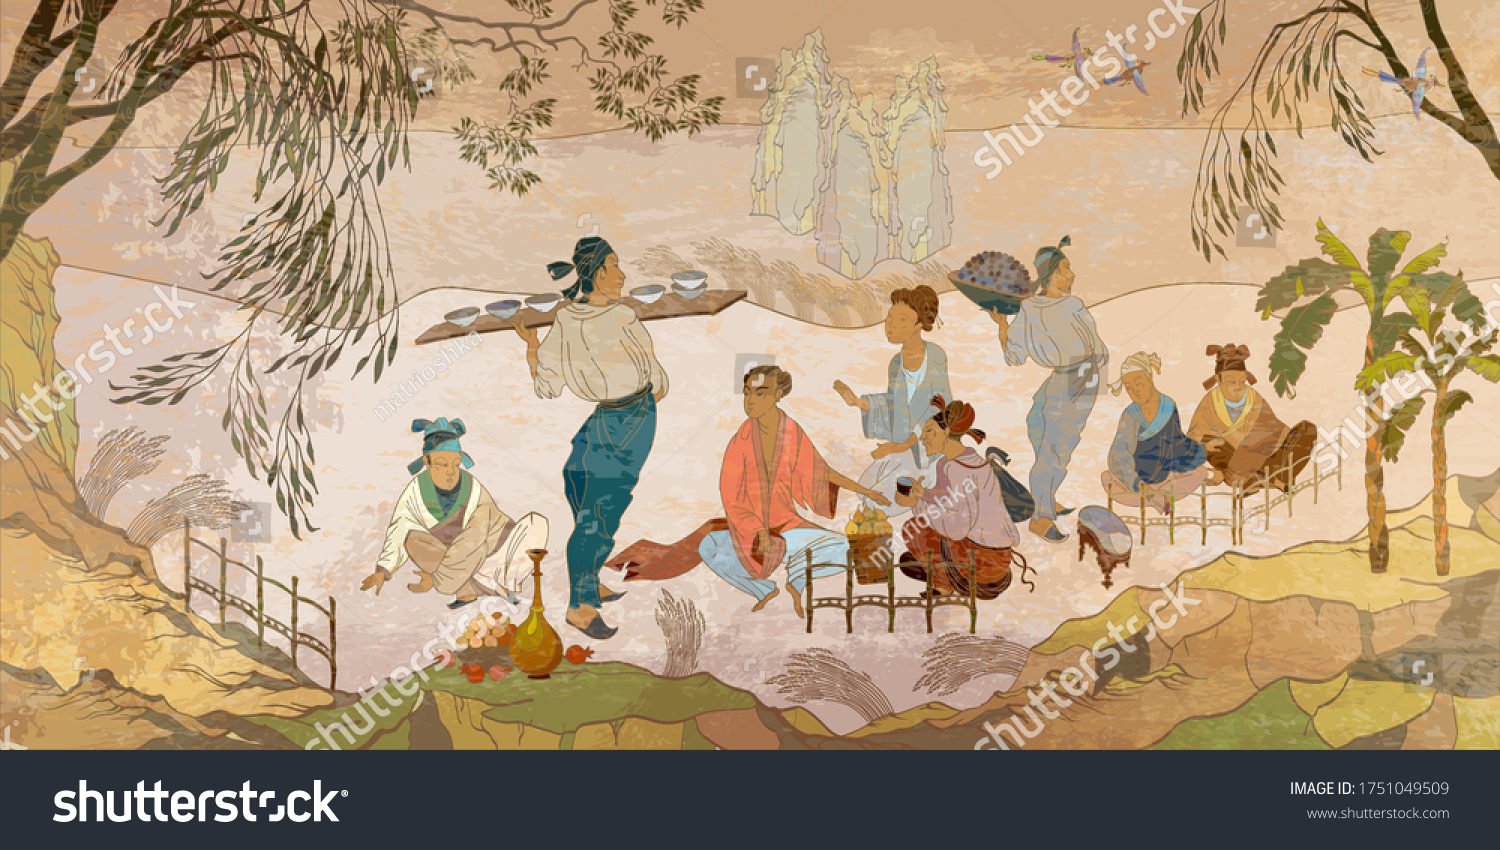 Ancient China. Oriental people. Tea ceremony. Traditional Chinese paintings. Tradition and culture of Asia. Classic wall drawing. Murals and watercolor asian style. Hand-drawn vector illustration